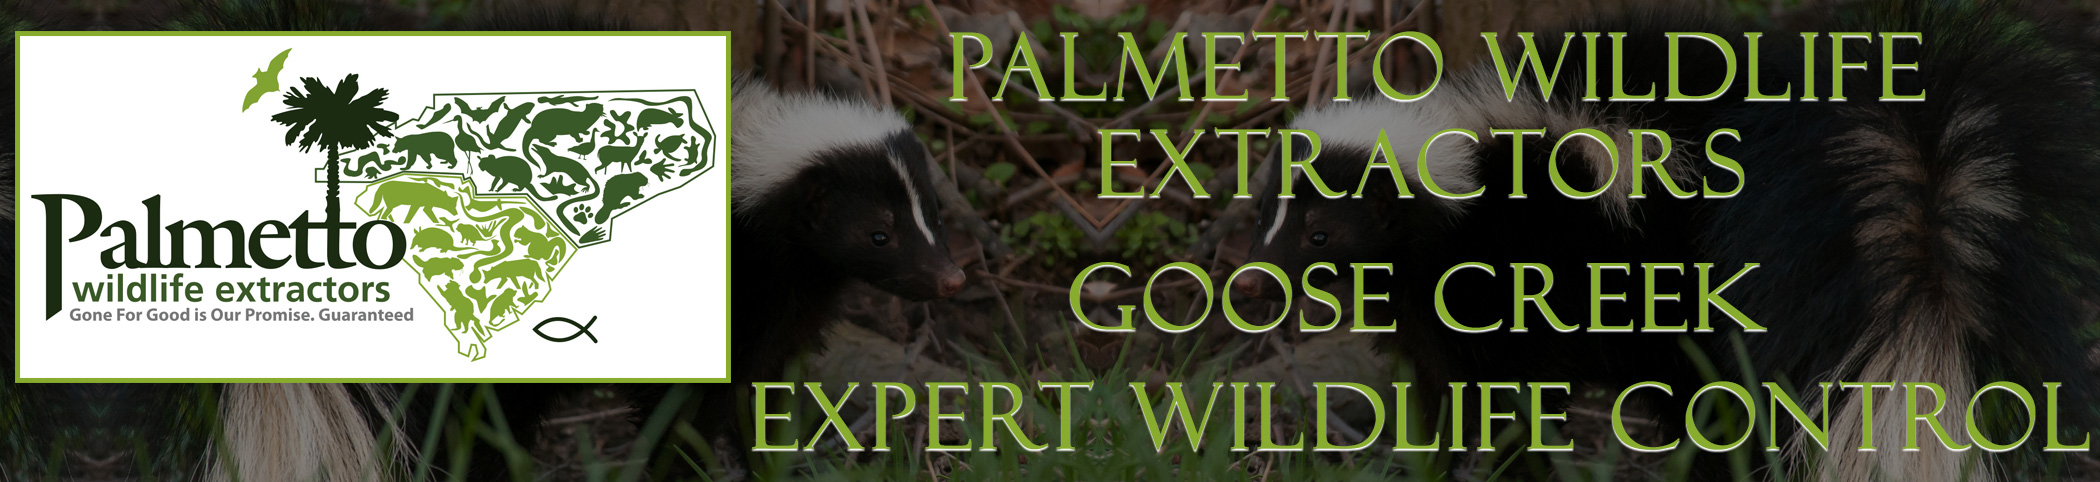 Palmetto Wildlife Extractors Goose Creek south carolina header image